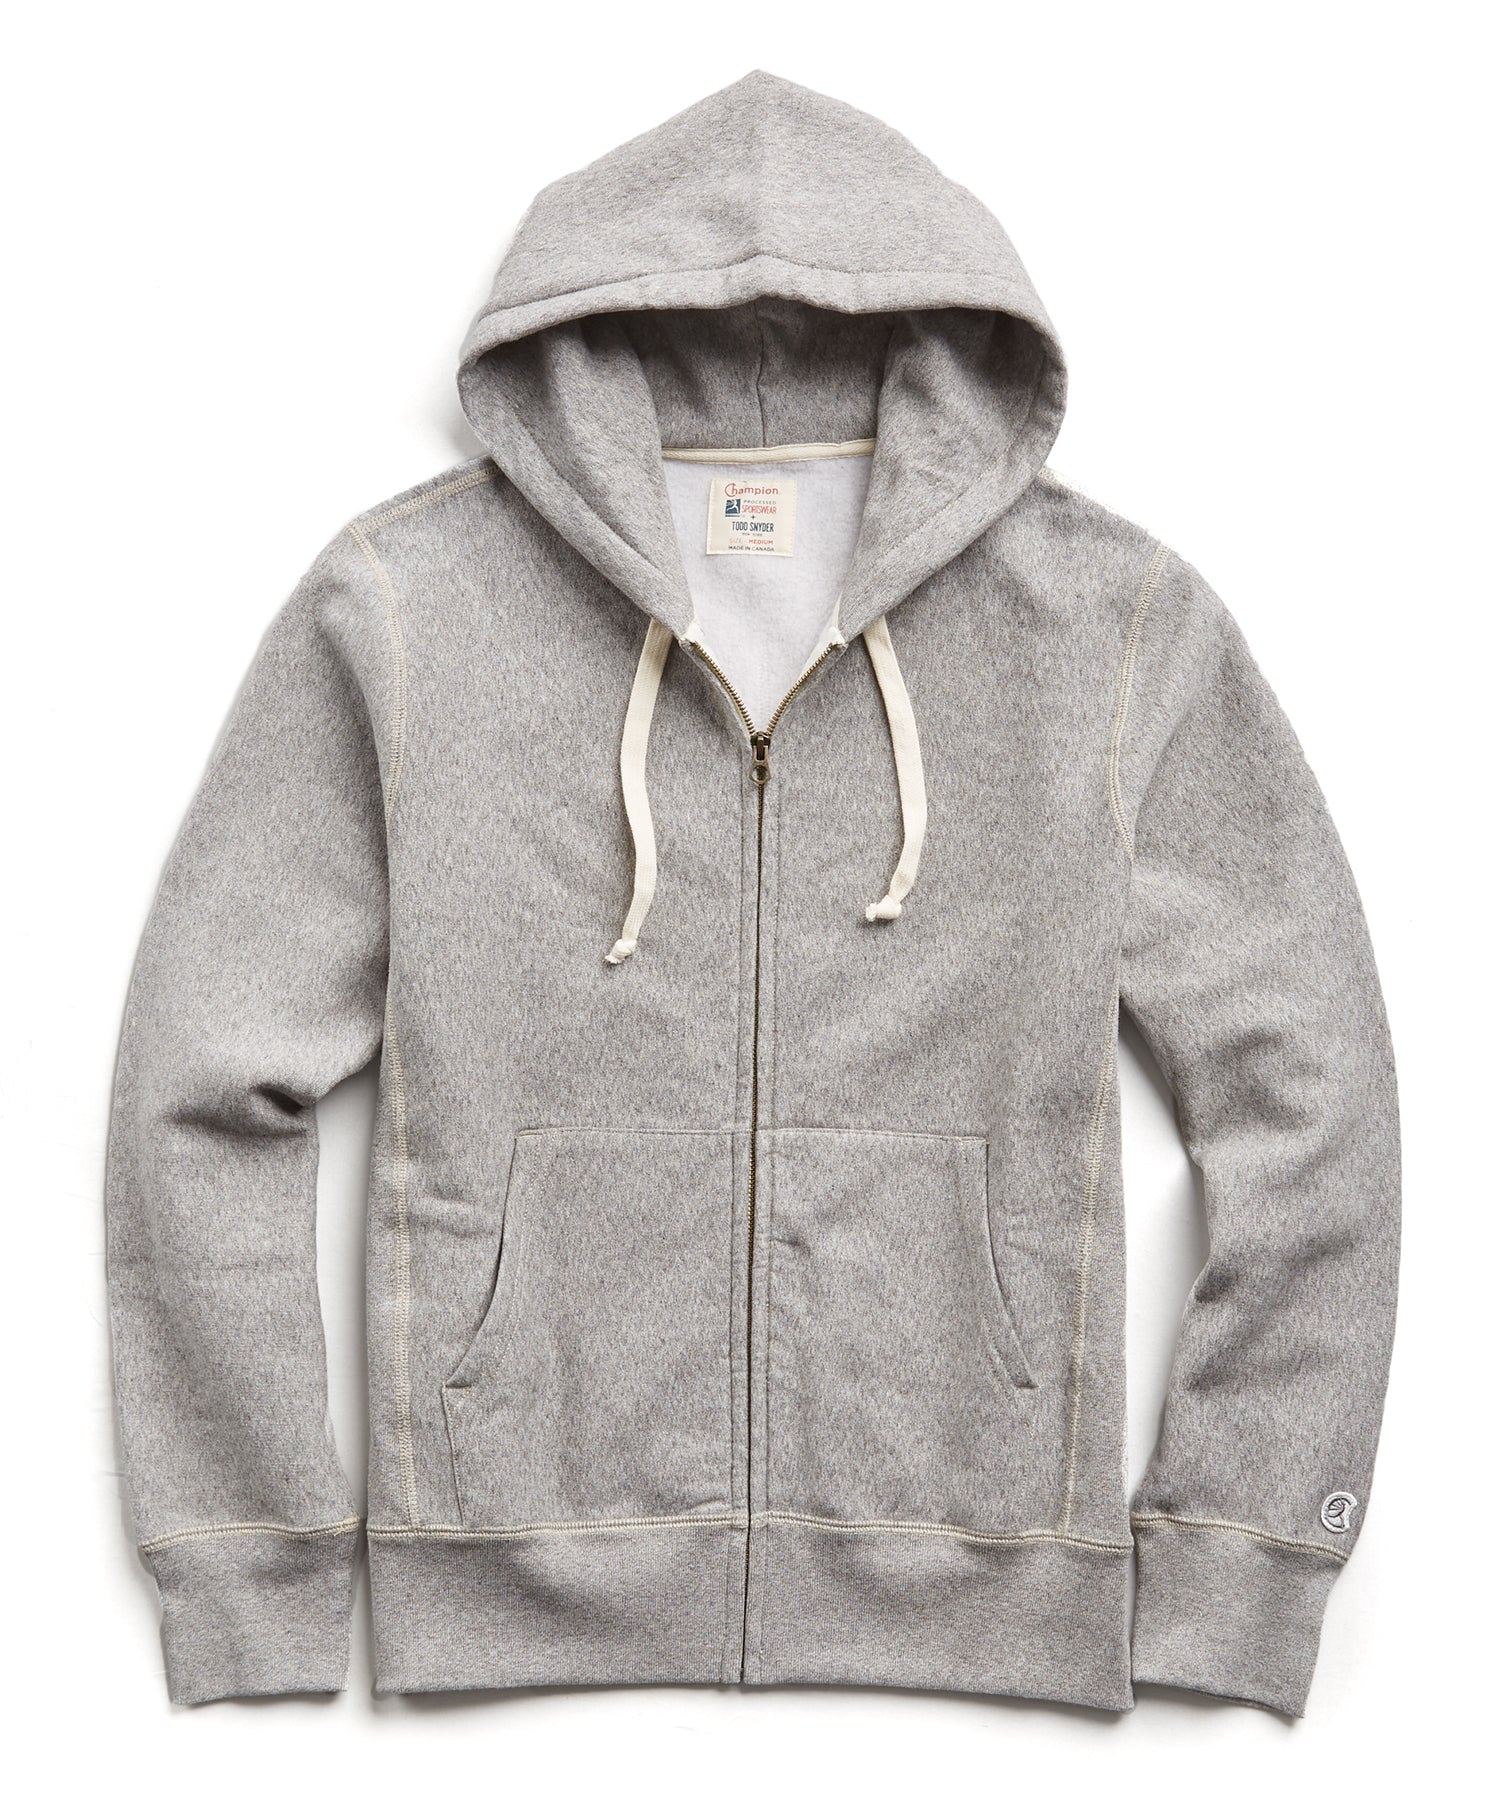 Heavyweight Full Zip Hoodie in Light Grey Mix